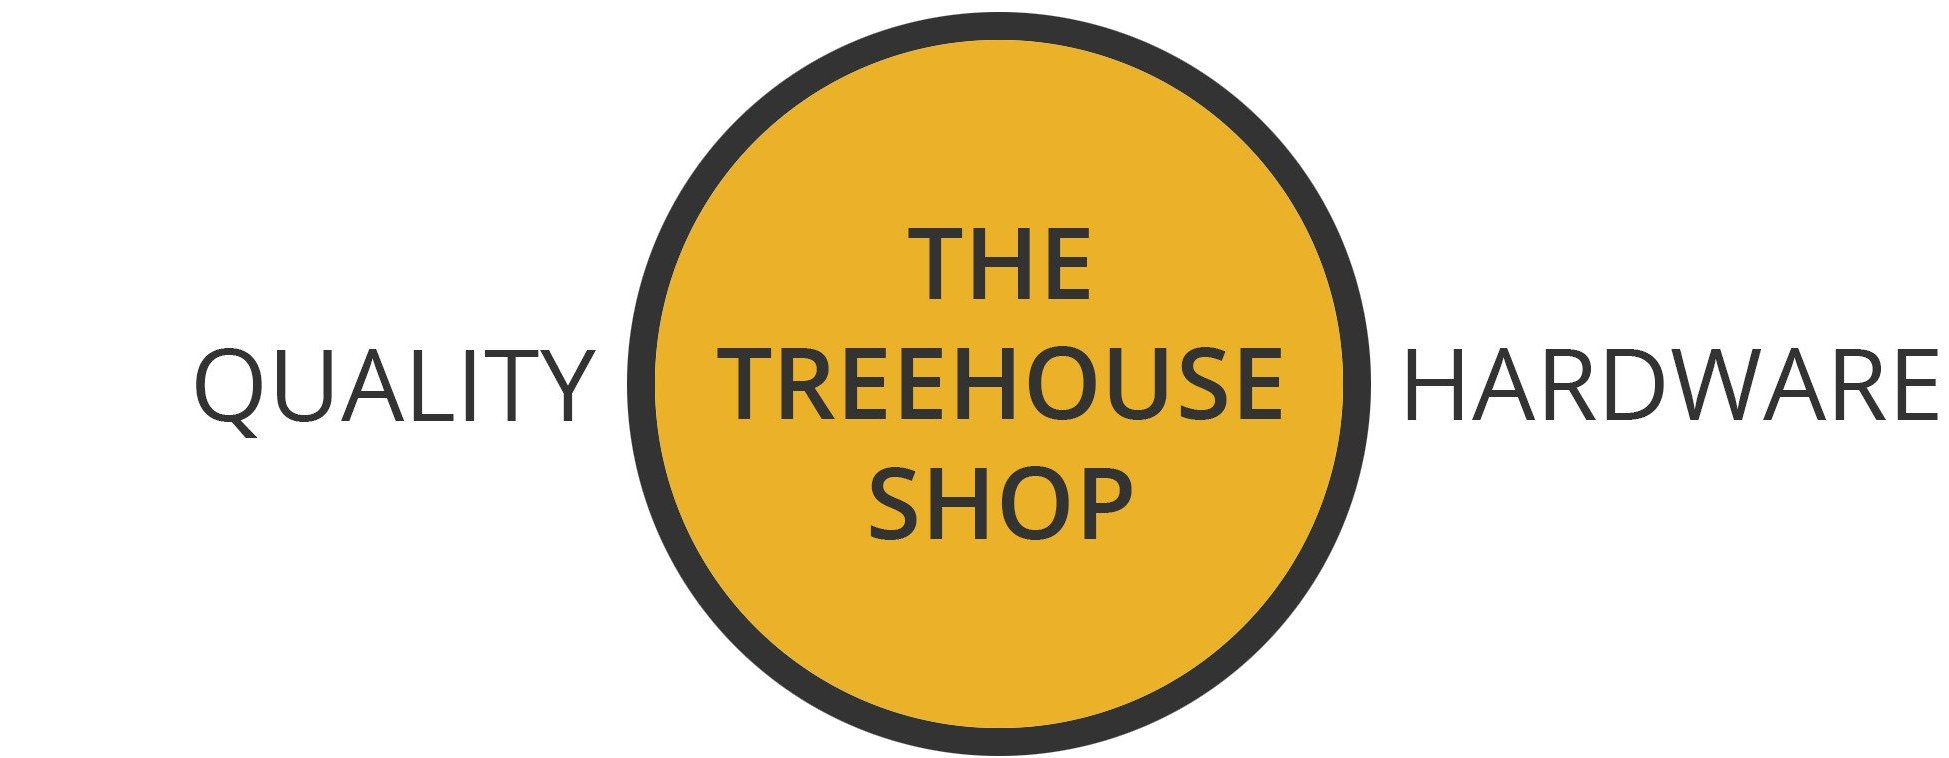 We offer high quality treehouse products from Germany: Treehouse Screws, Rope Attachments, Treehouse Accessoires, ... you can buy everything you need!!!!!!!